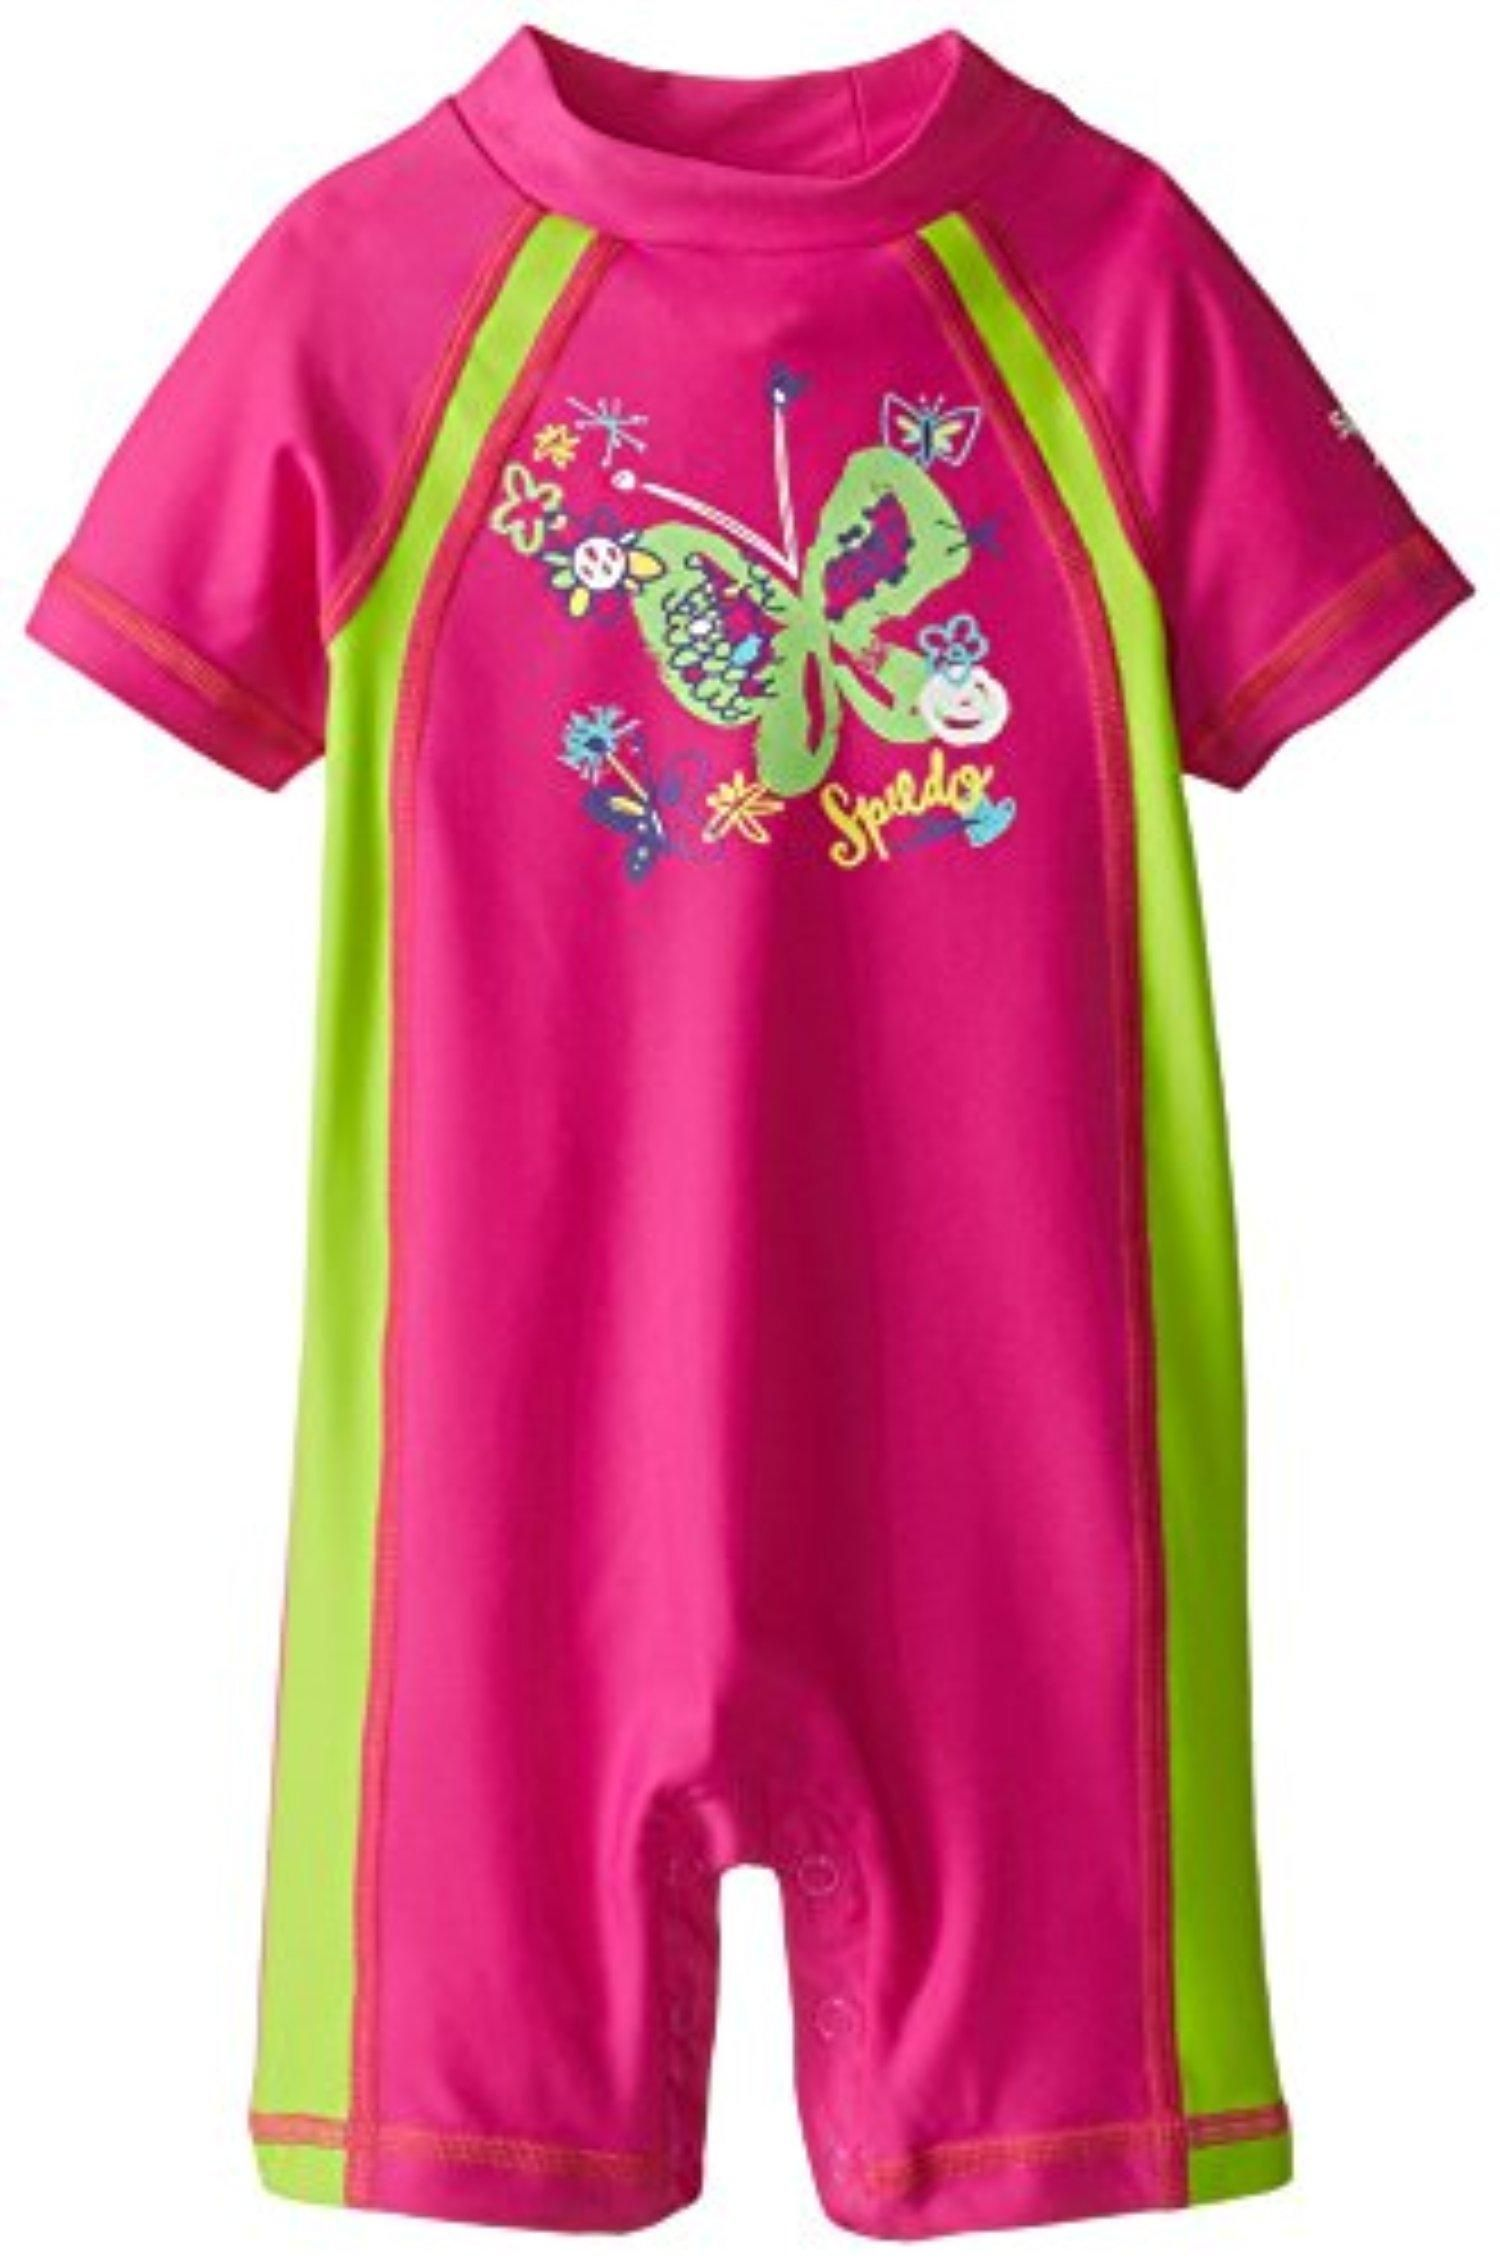 b2c1f96679 Speedo Little Girls' Begin To Swim UV 50+ Toddler Sun Suit, New Blush, 2T -  Brought to you by Avarsha.com